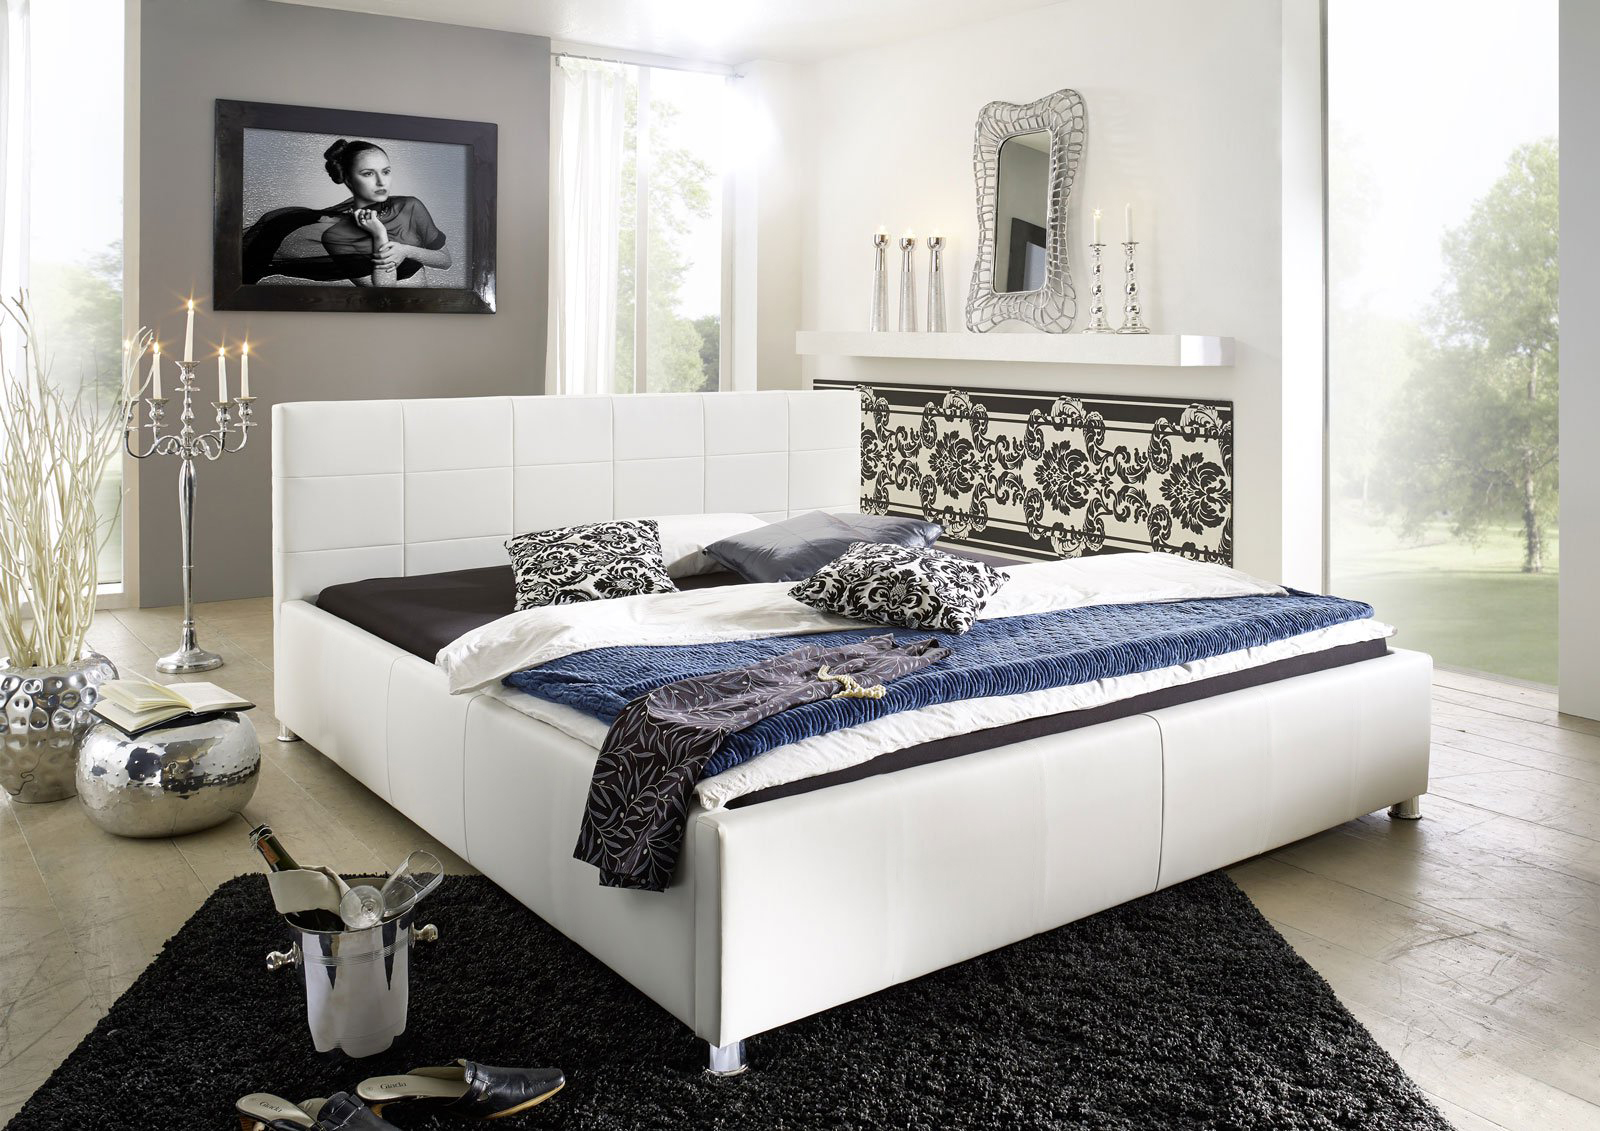 sam polsterbett 140 x 200 cm wei doppelbett kira. Black Bedroom Furniture Sets. Home Design Ideas